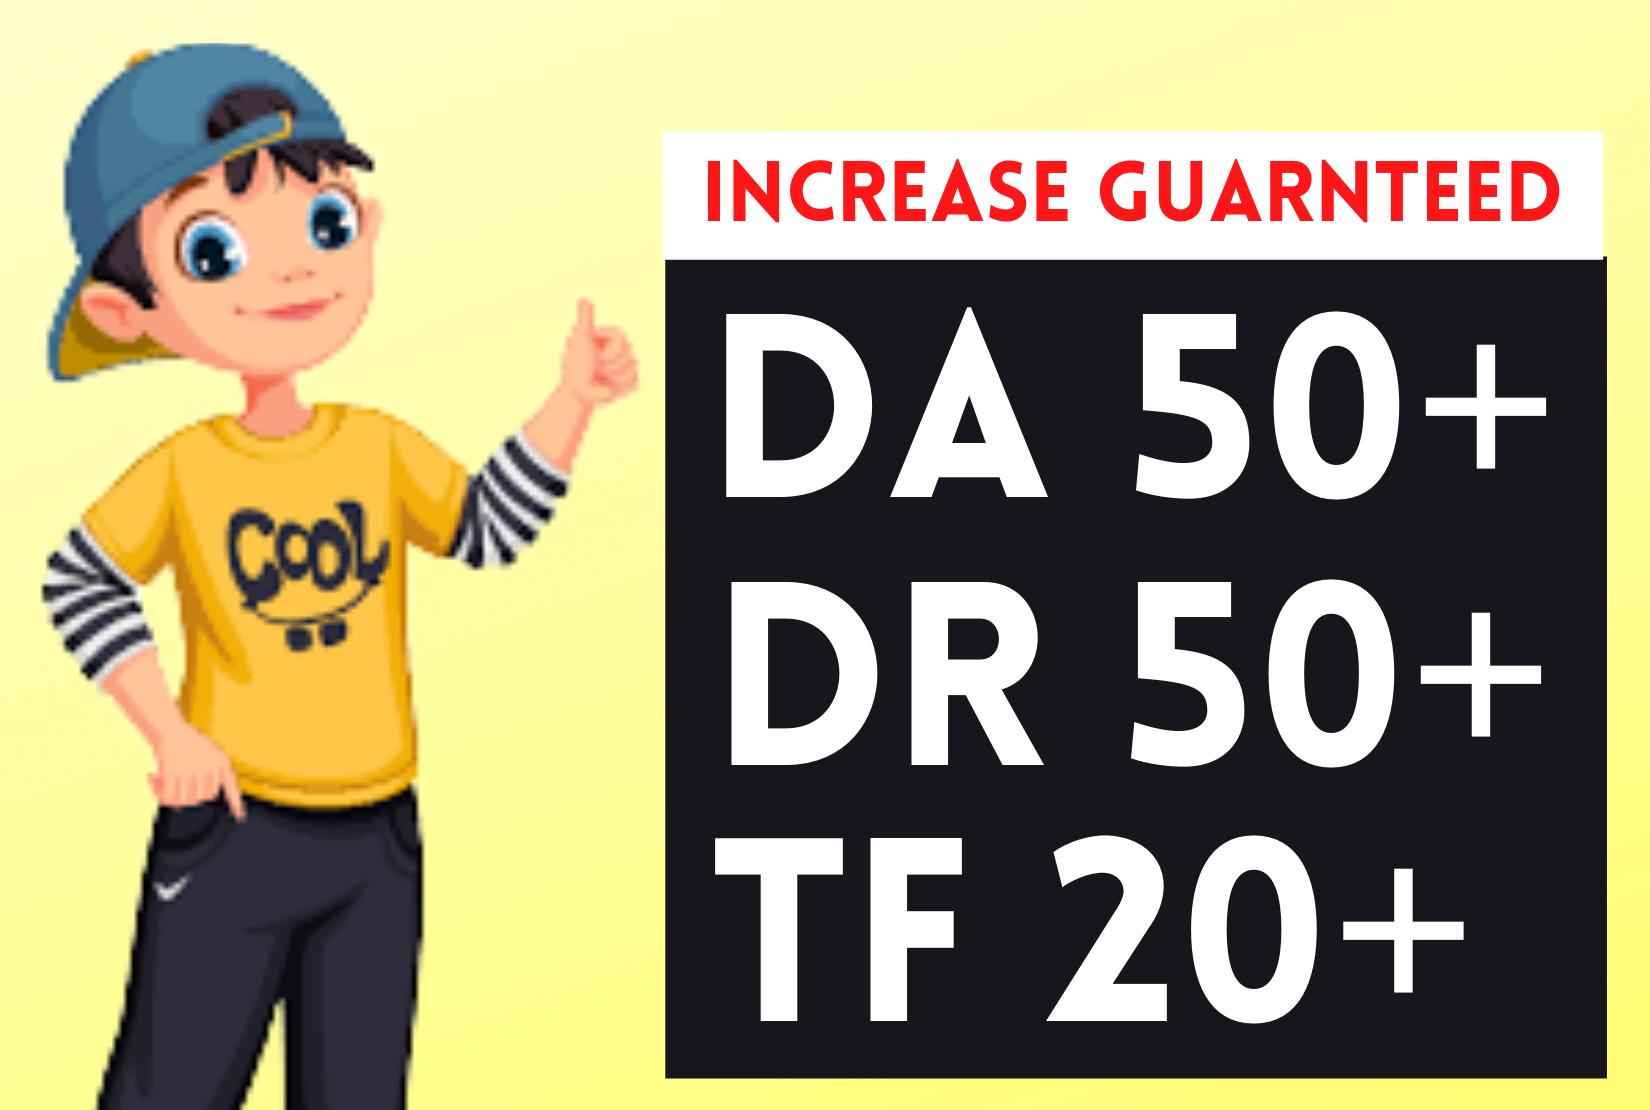 I will icrease domain rating ahrefs dr 40 moz da 50 tf 20 to 30